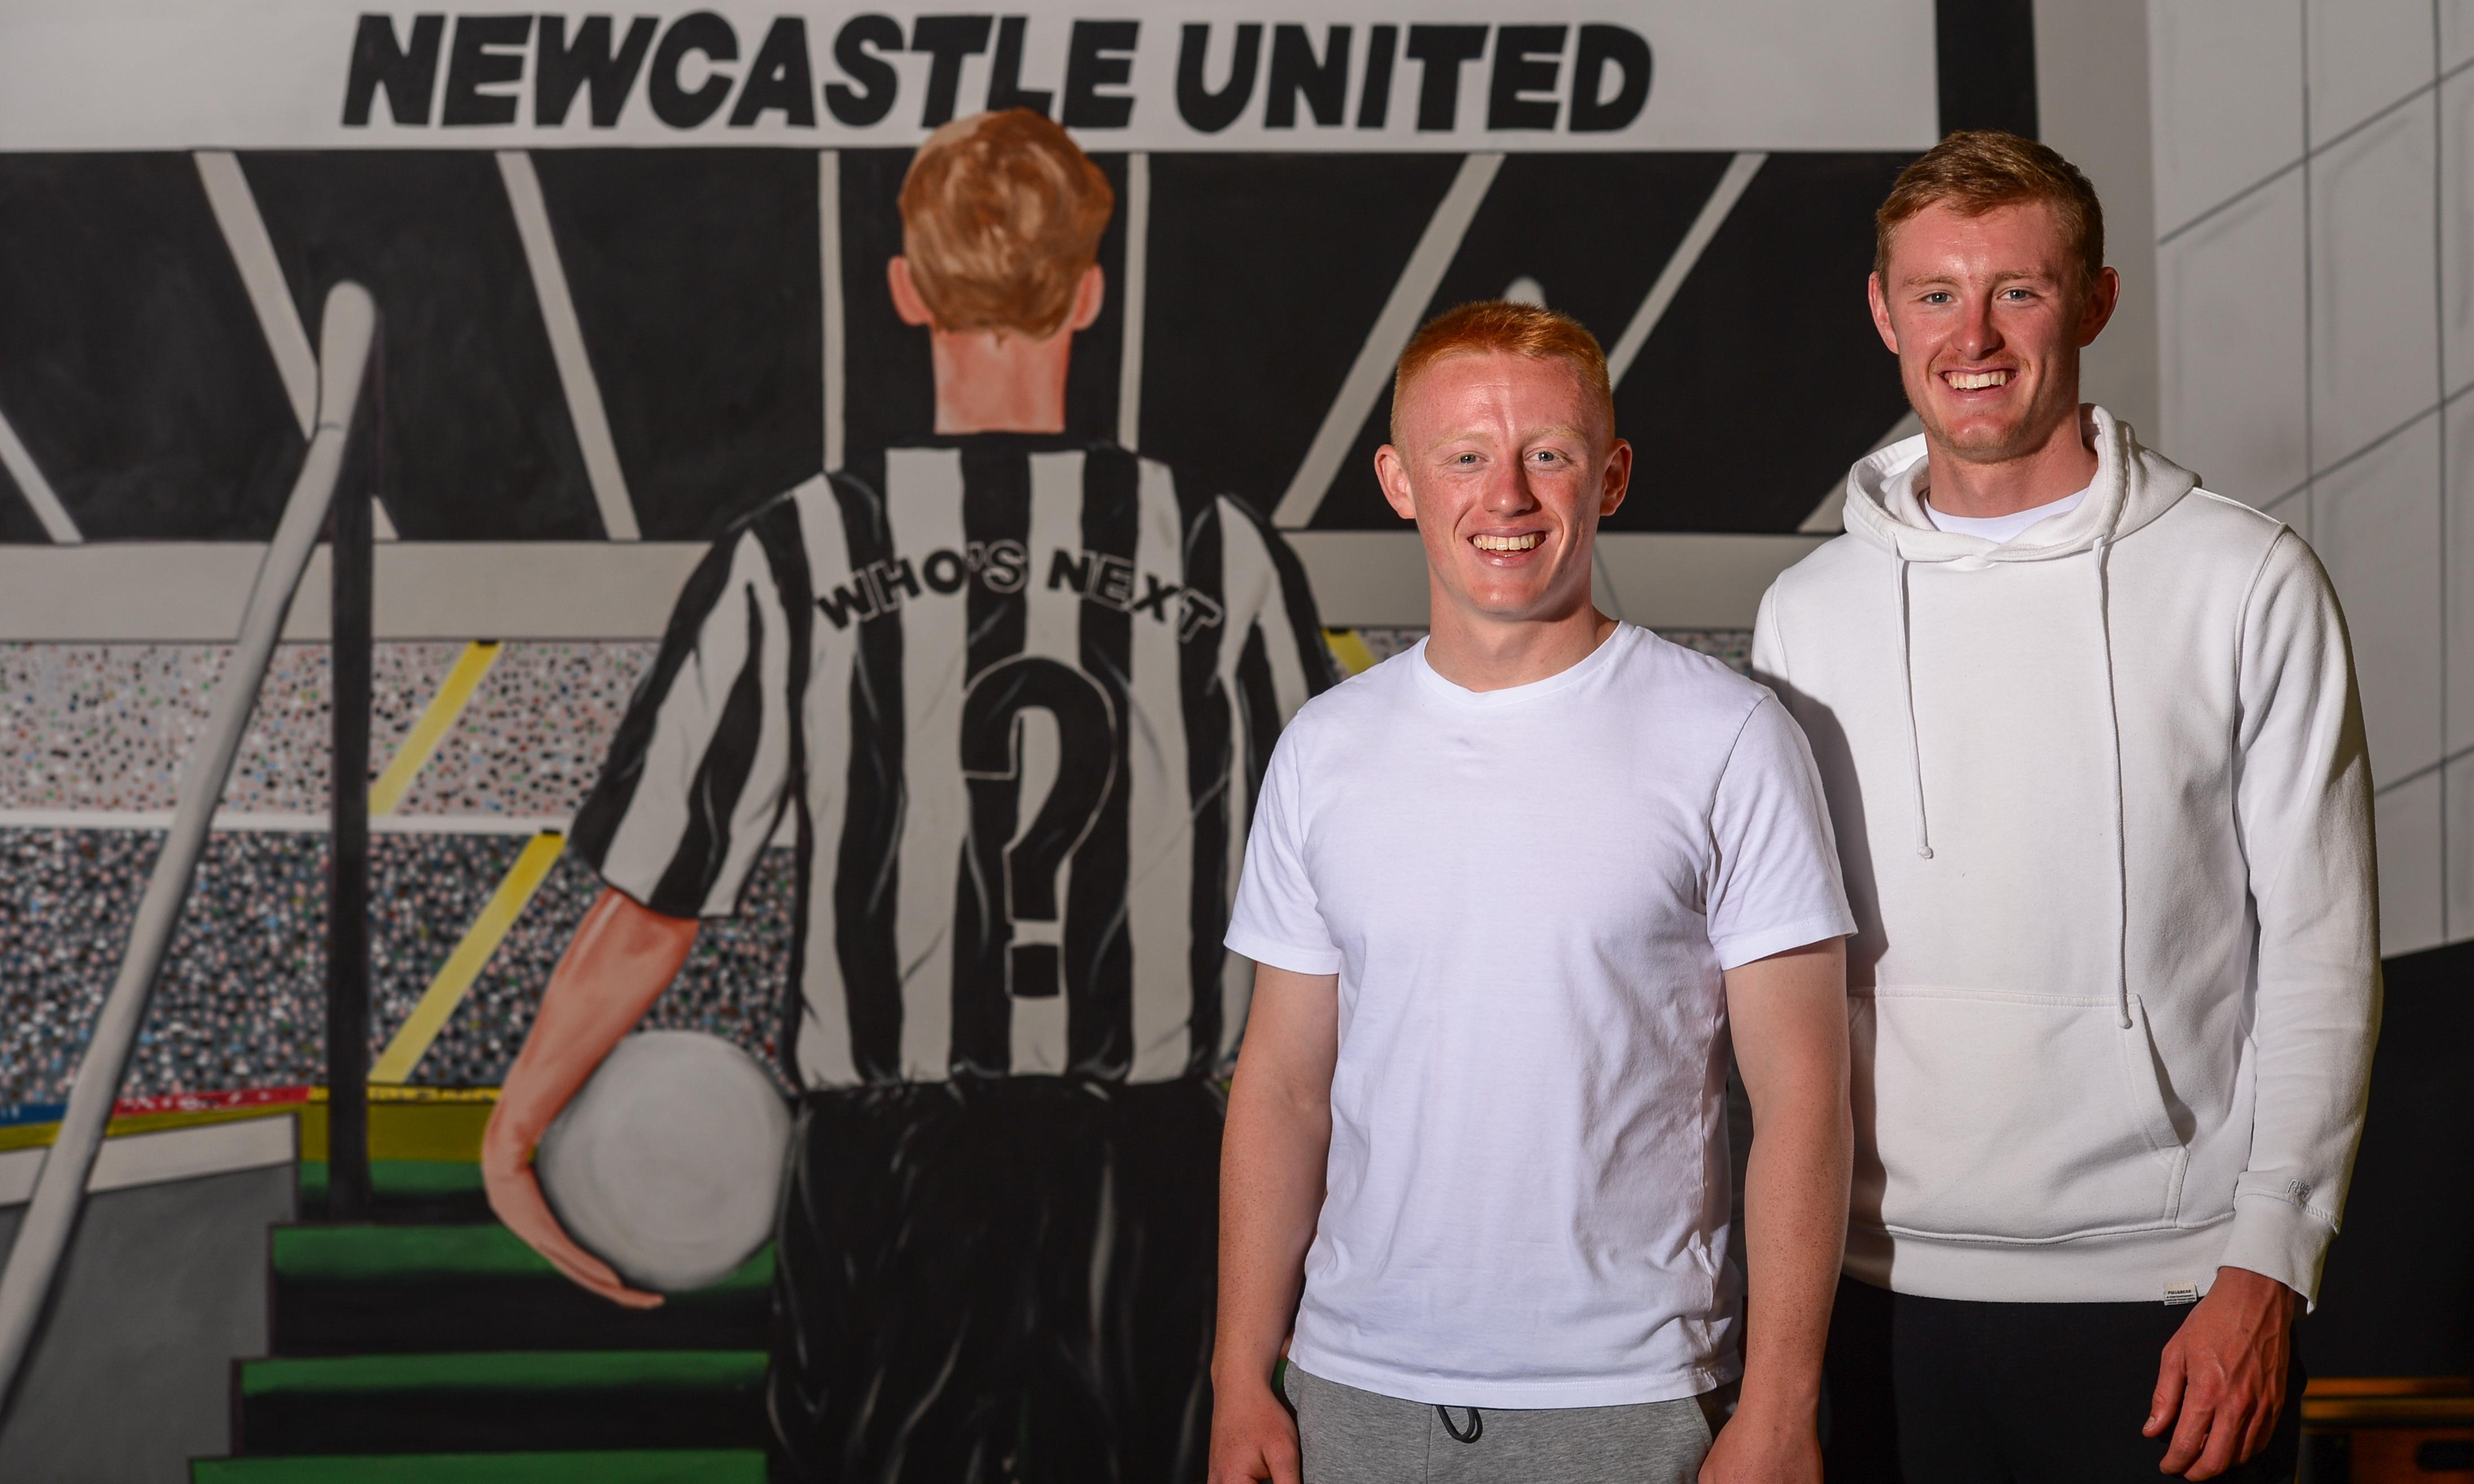 Sean and Matty Longstaff: 'Knowing your brother has got your back is special'